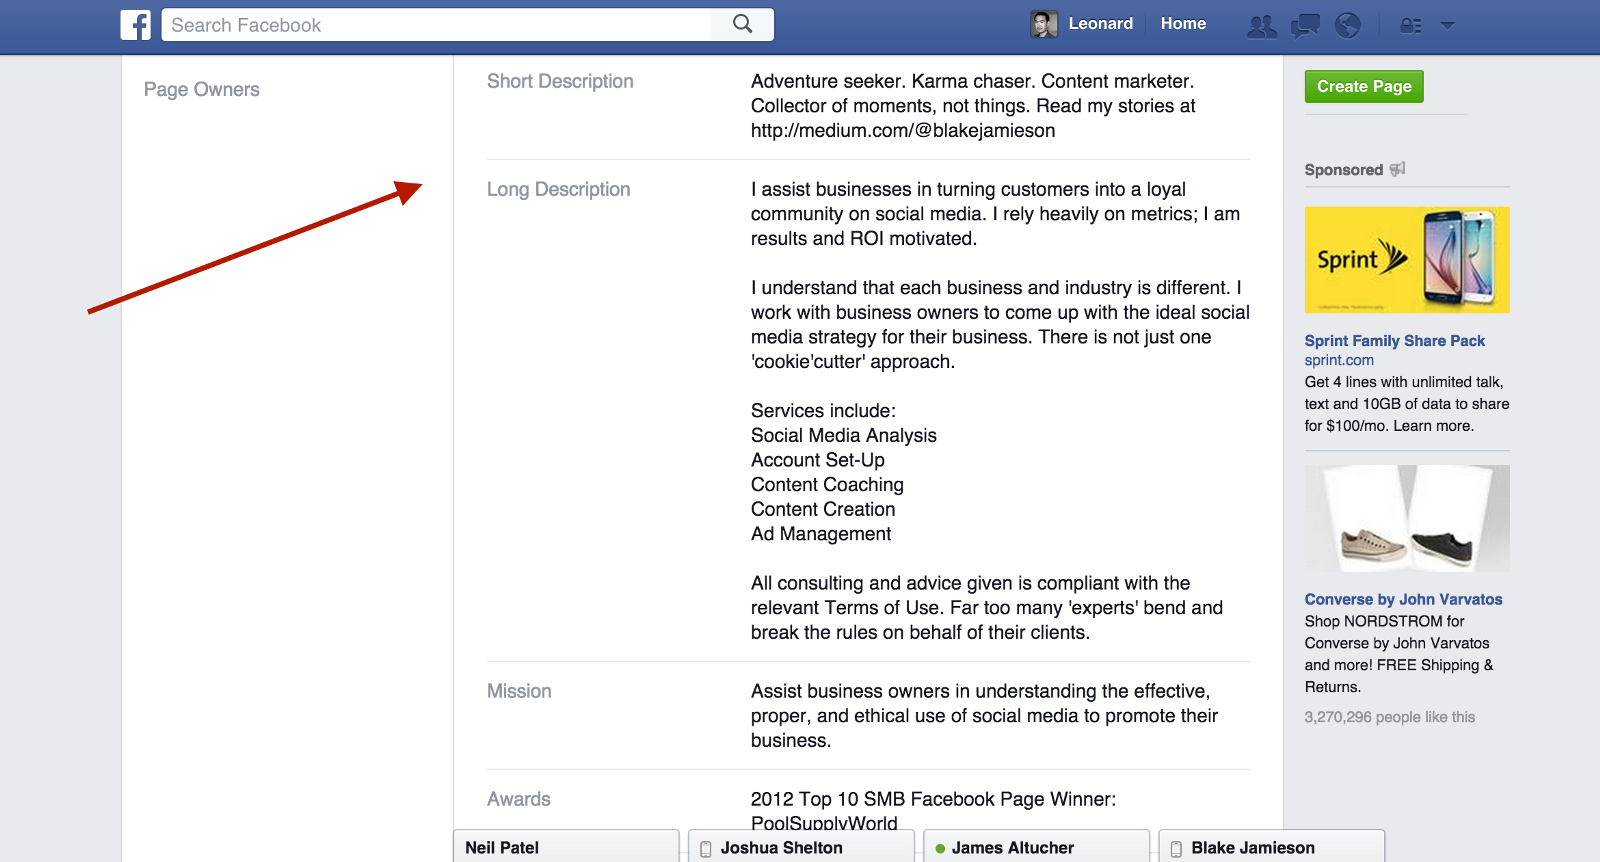 how to write a checkmark on facebook